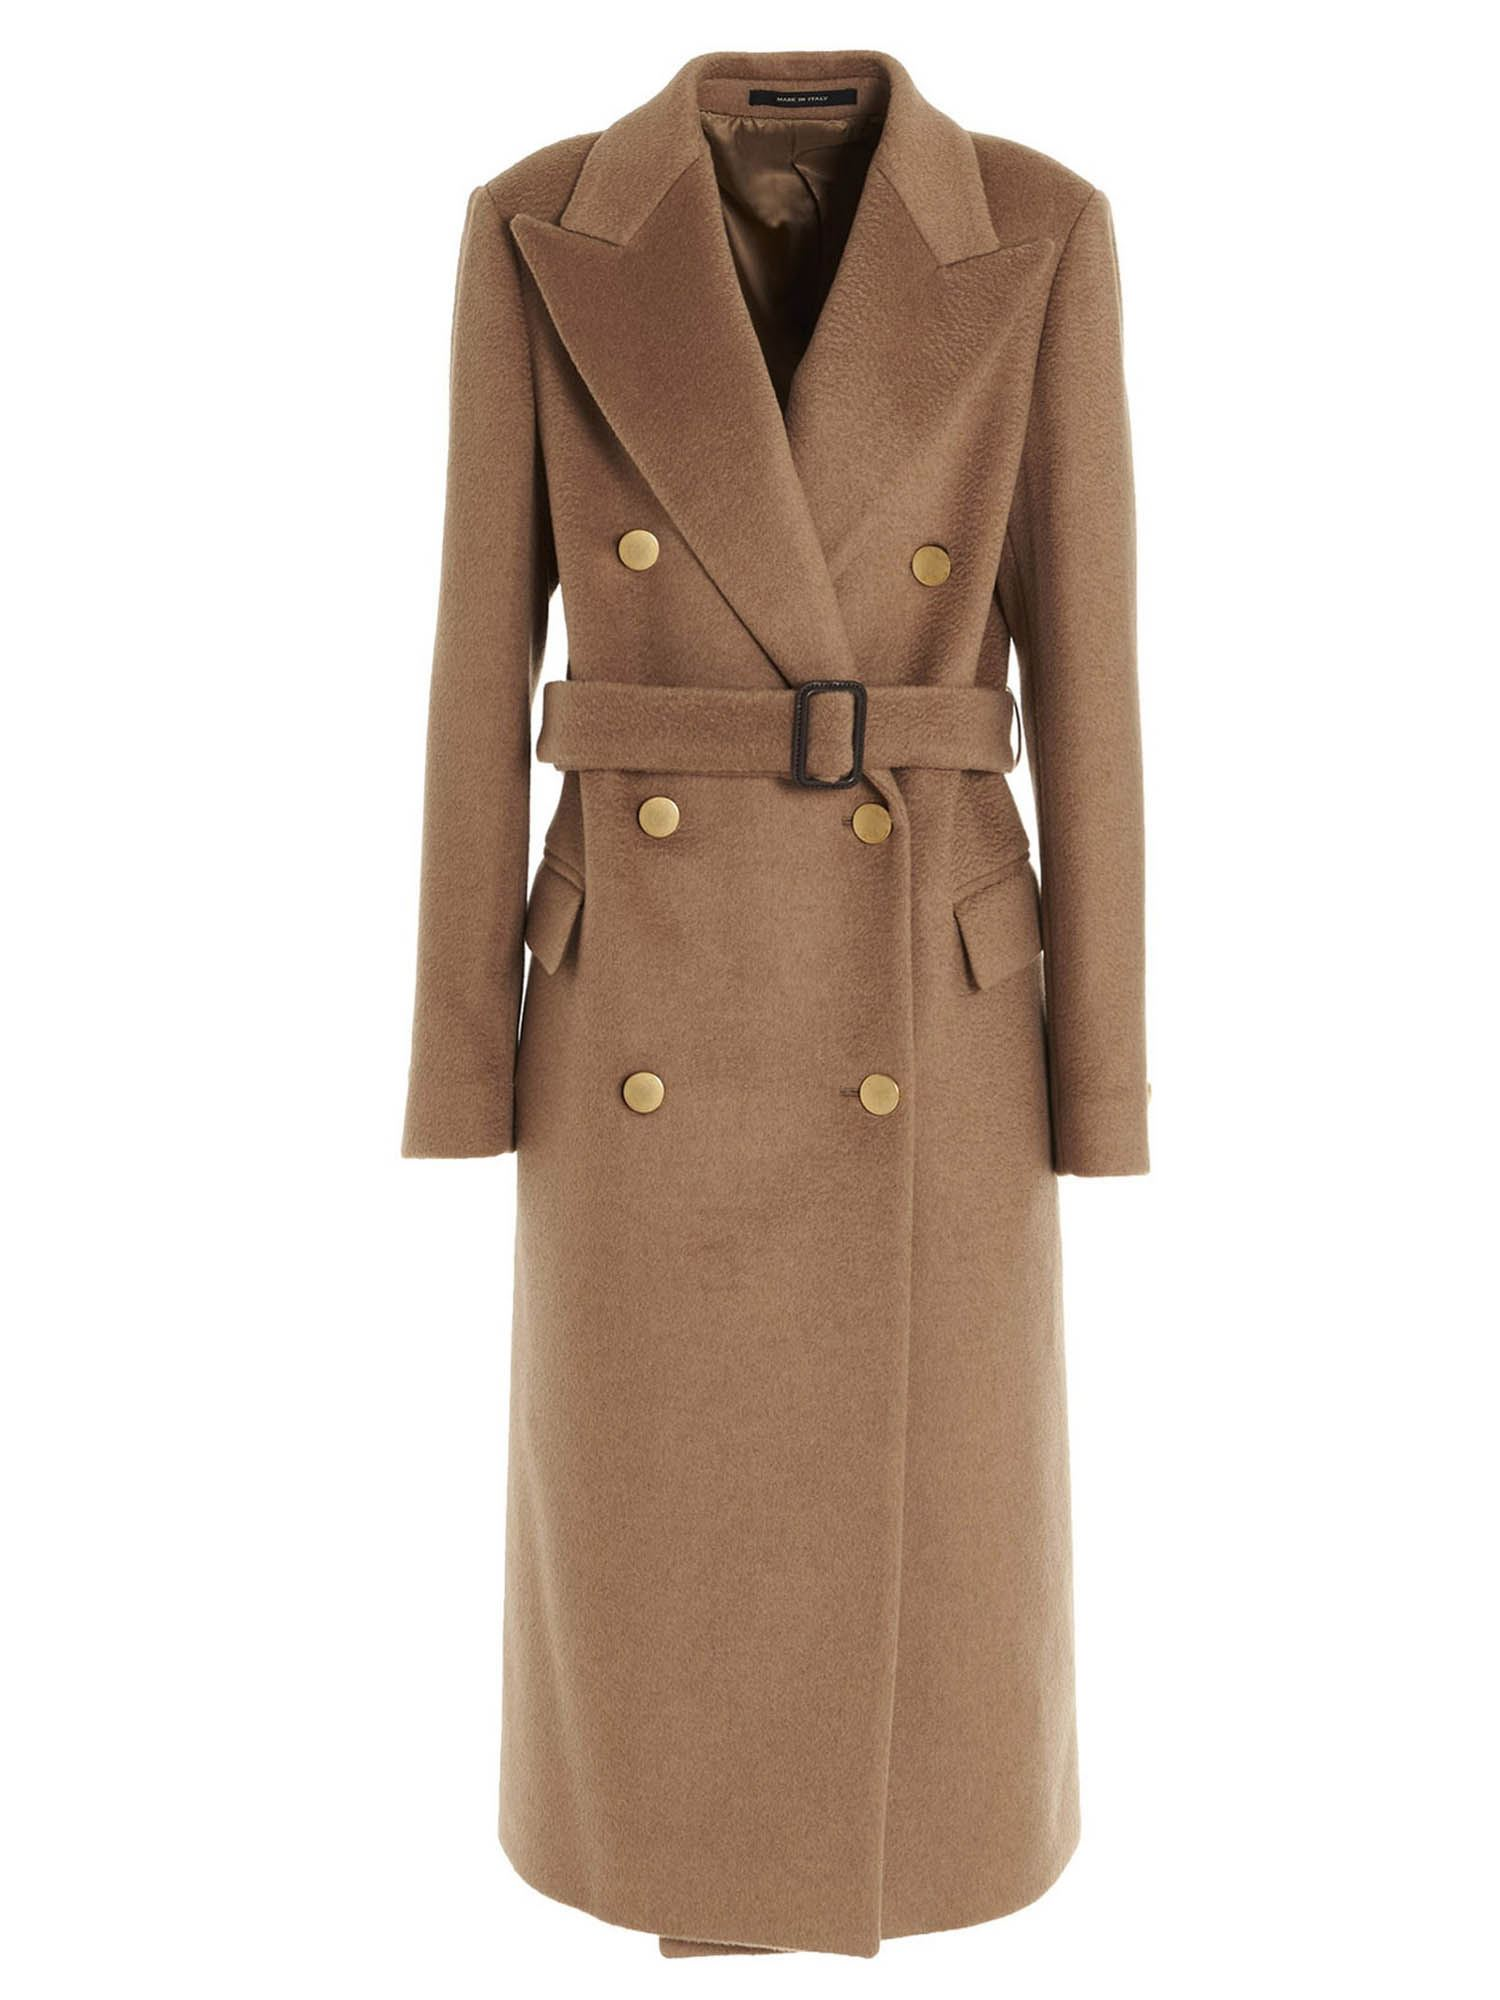 Tagliatore JOLE C COAT IN CAMEL COLOR